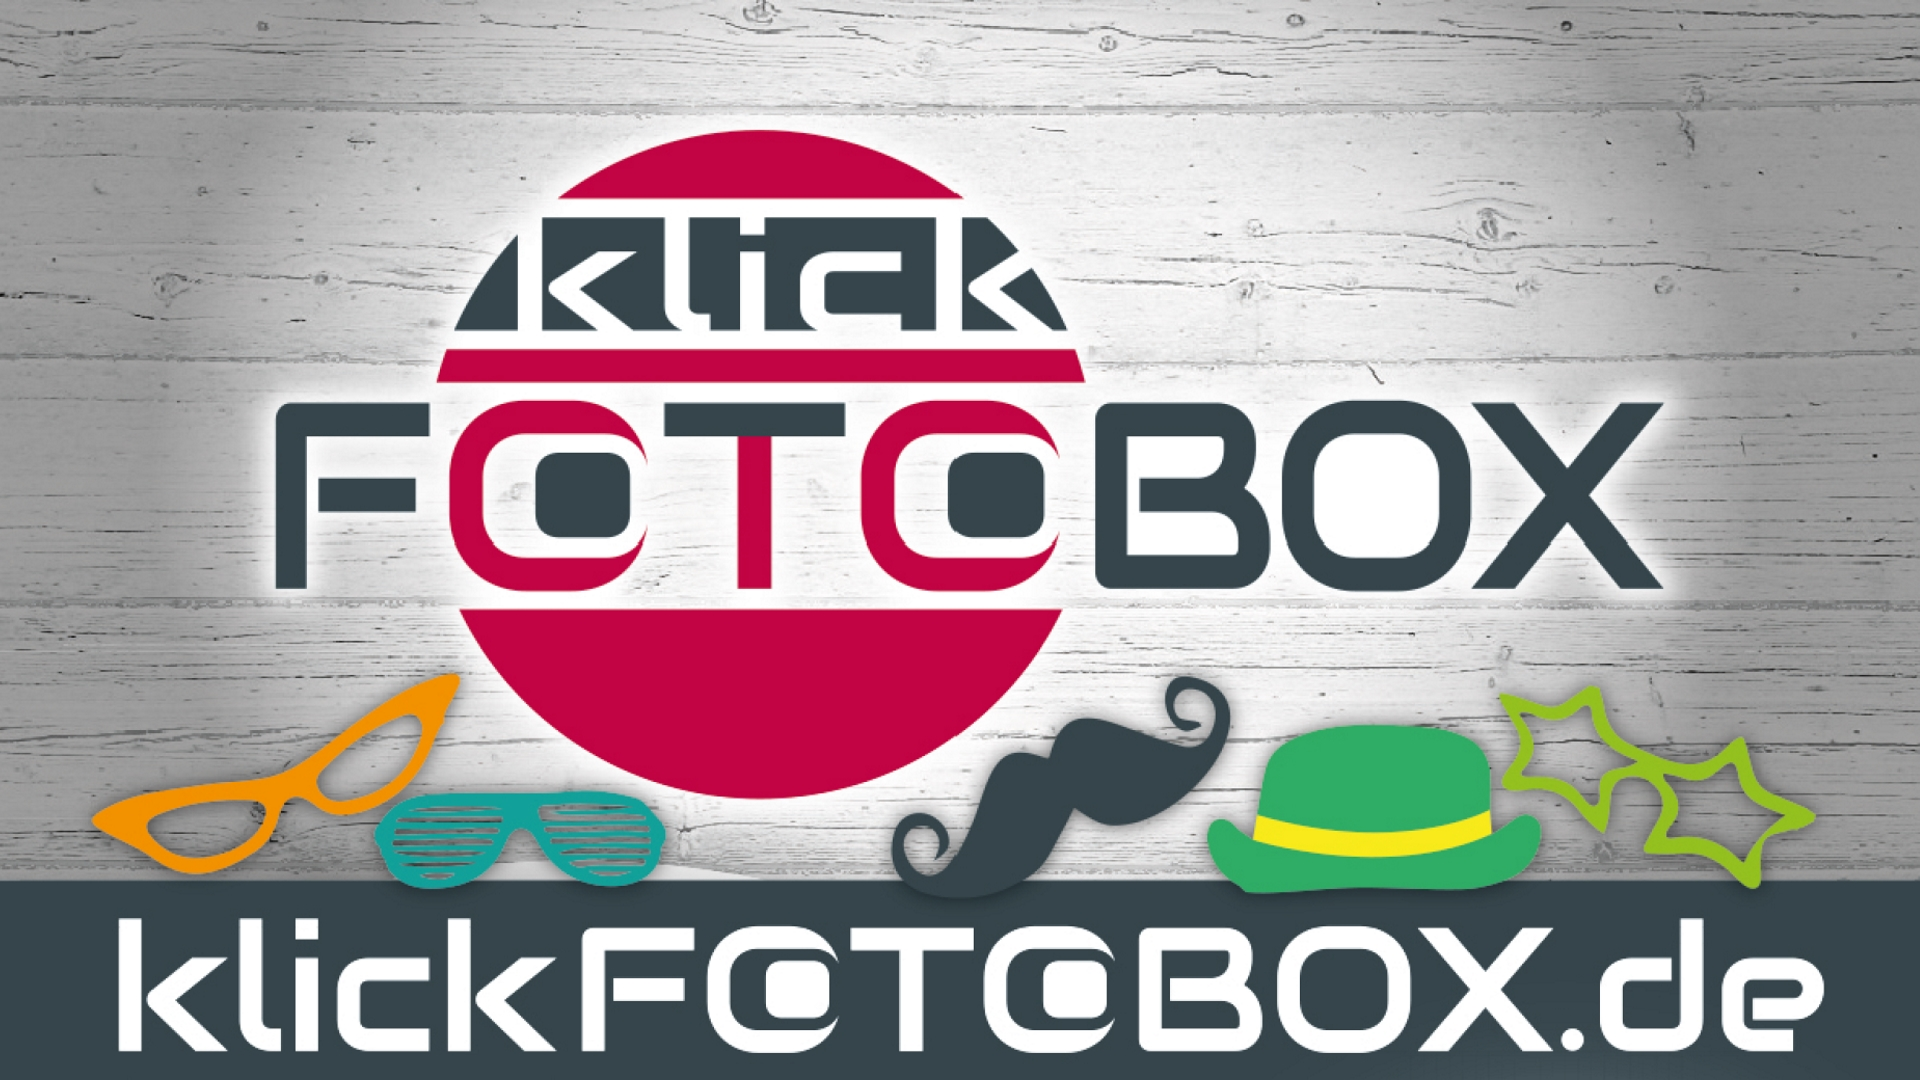 klickFOTOBOX.de